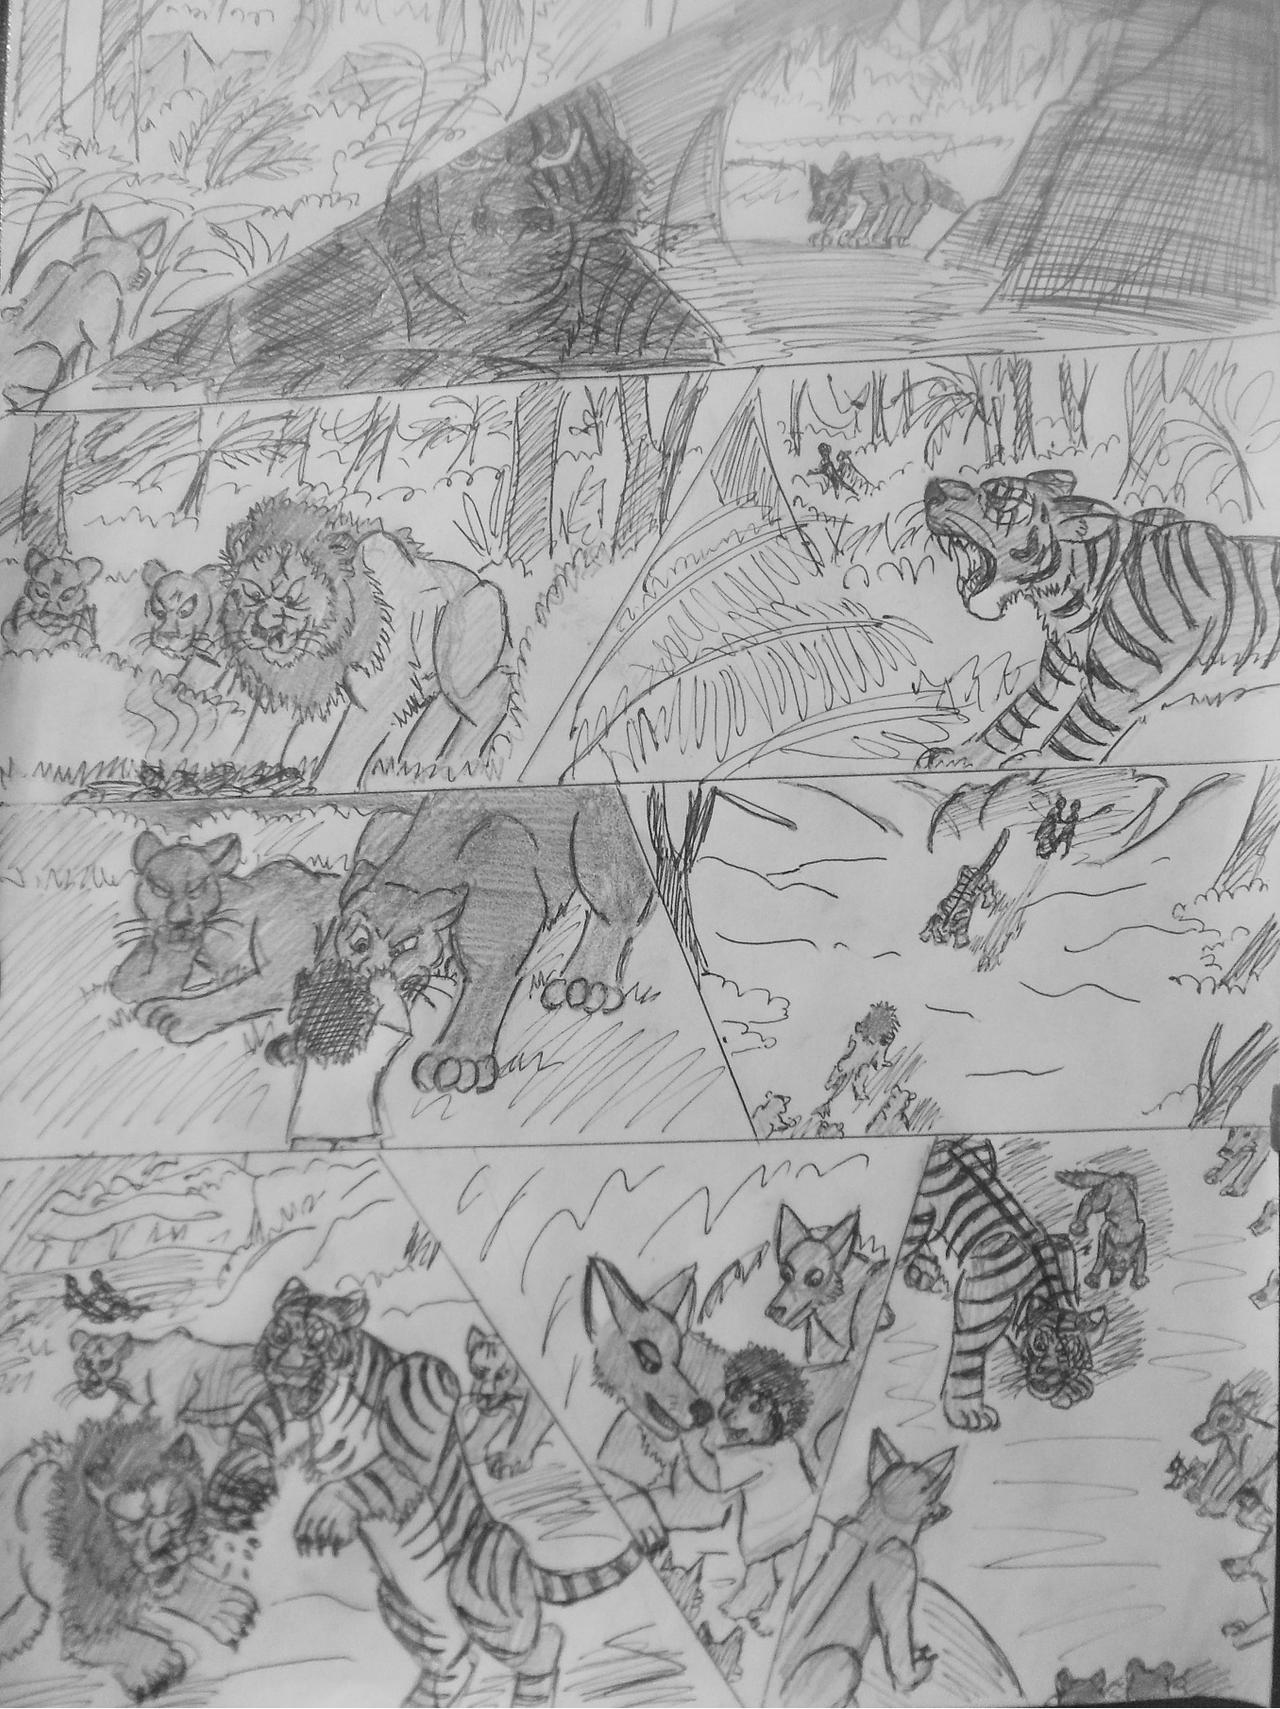 Book pages wallpaper old book pages wallpaper - Jungle Book Shere Khan S Story I By Wdghk On Deviantart